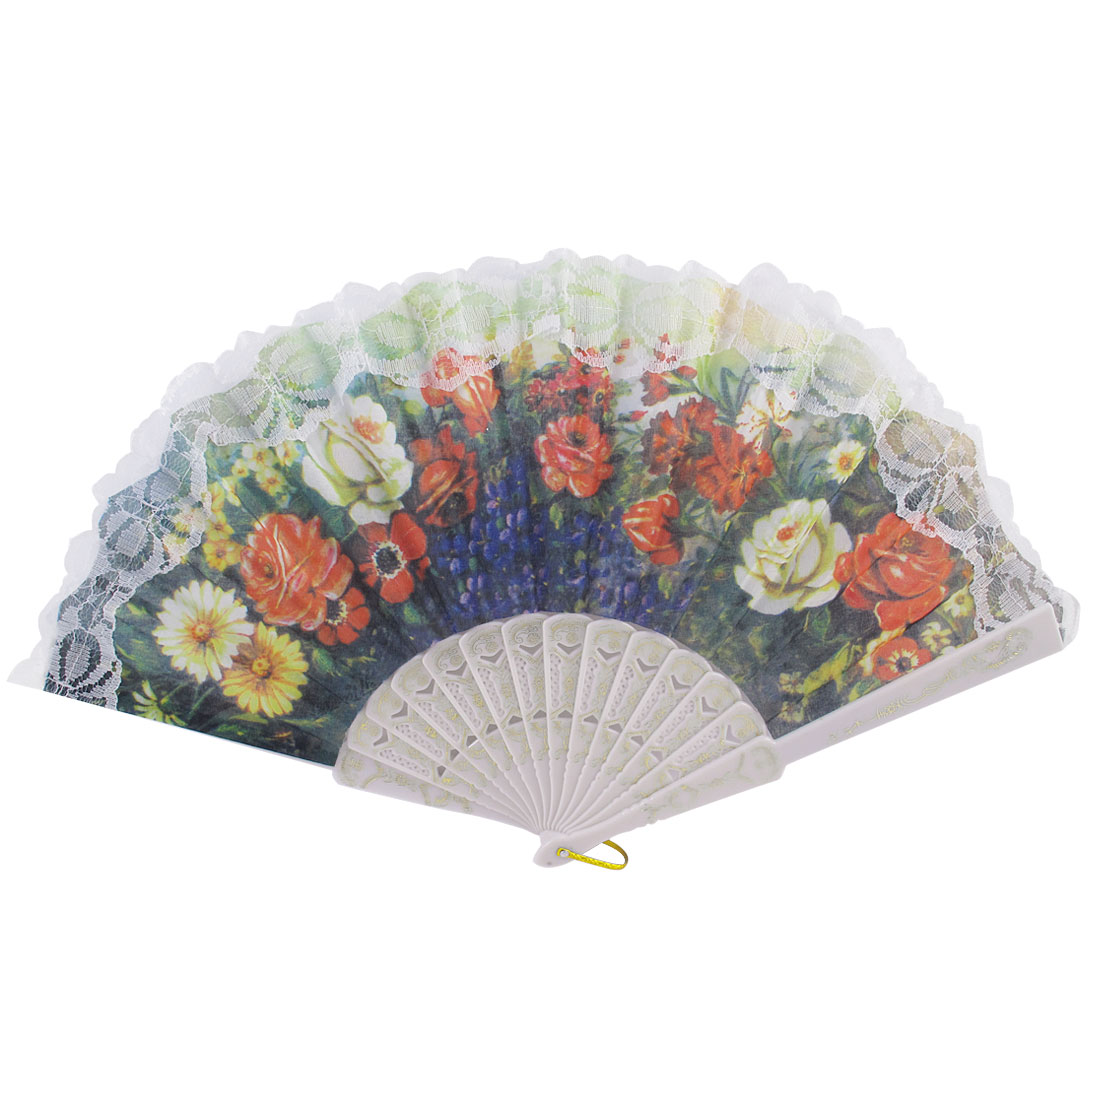 White Ribs Flowers Pattern Lace Edge Fanning Spanish Style Hand Fan Christmas Gift